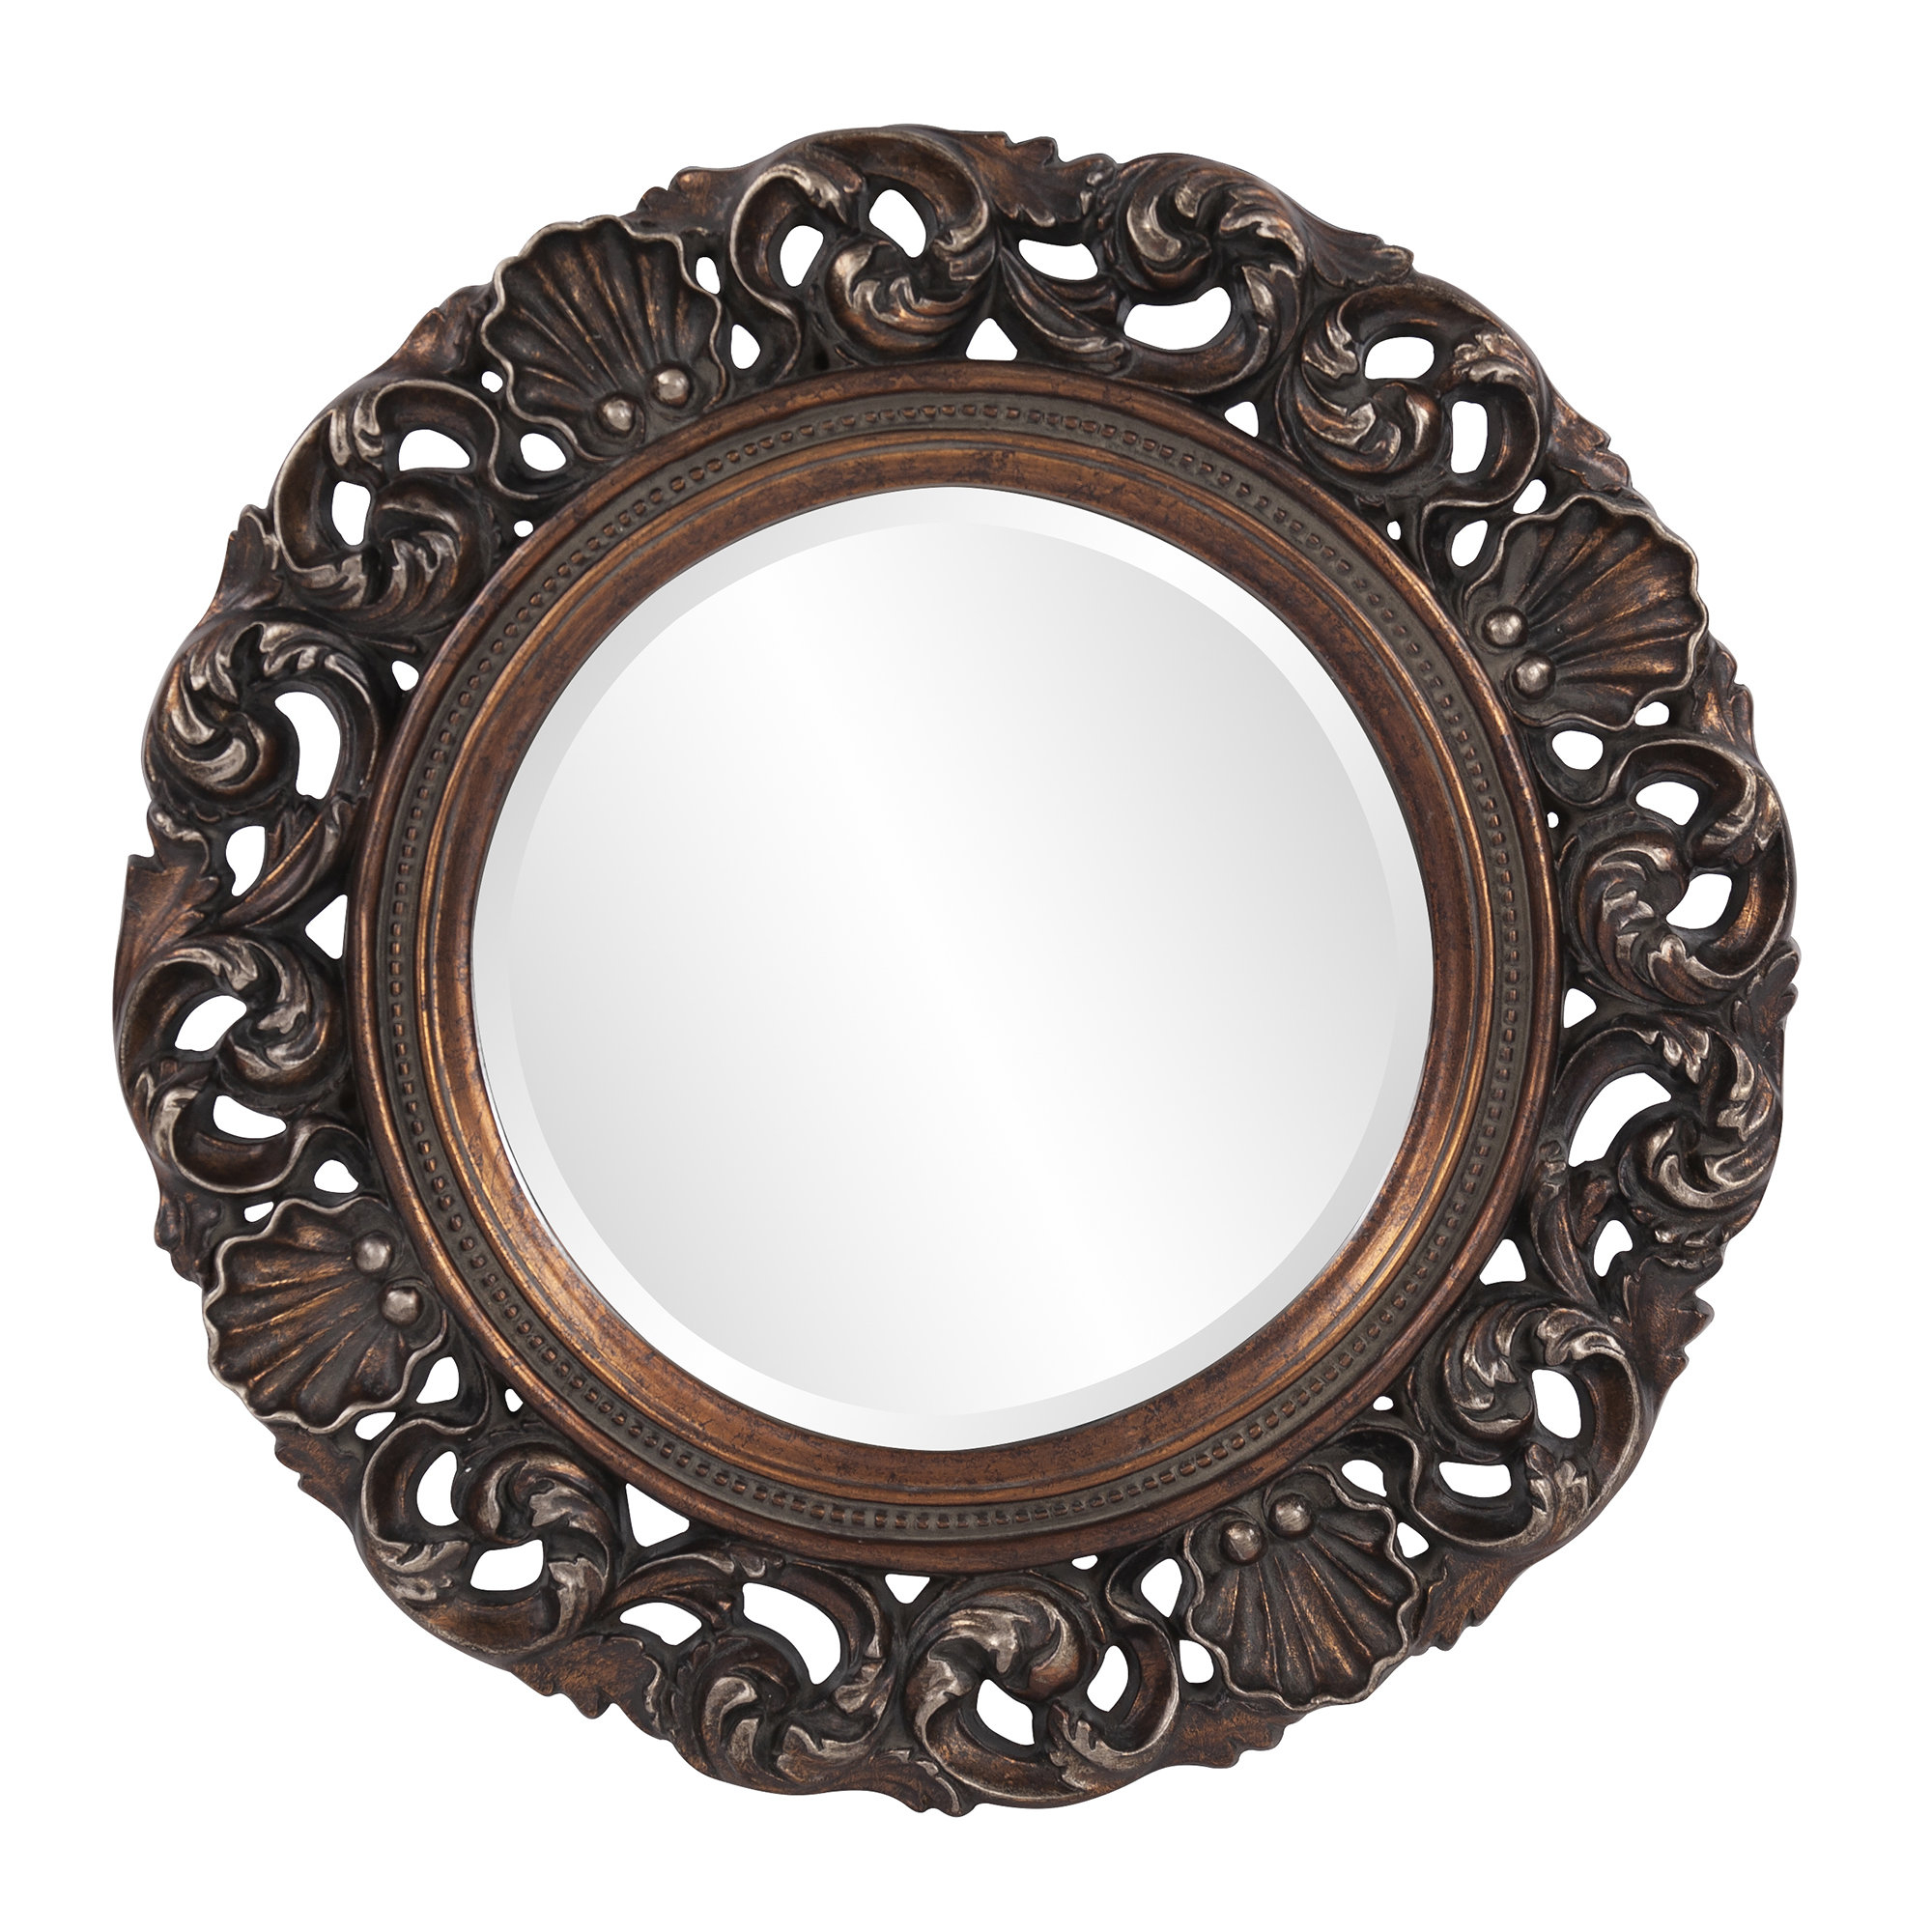 Alcmene Round Wall Mirror Pertaining To Alissa Traditional Wall Mirrors (View 14 of 20)